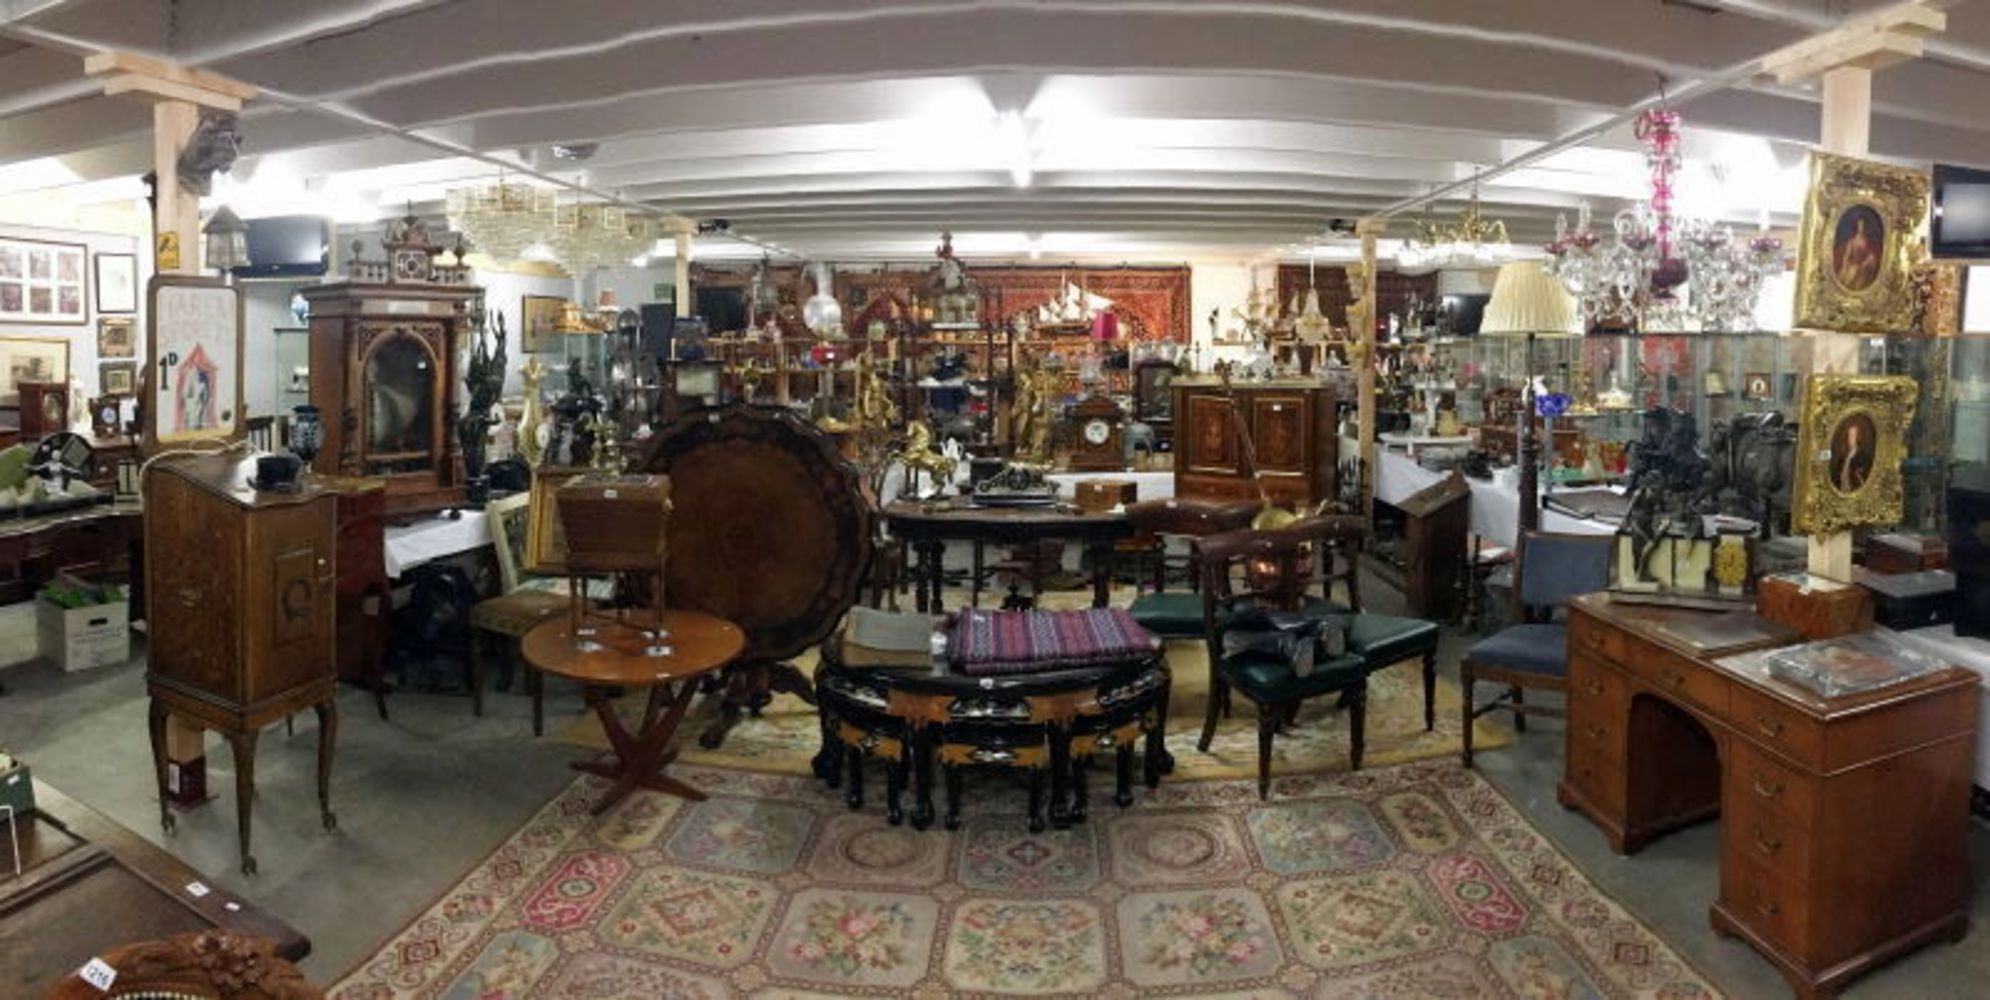 A 3 day Antiques & Collectors including Gold, Jewellery, Silver, Furniture, etc. DUE COVID RESTRICTIONS THIS SALE WILL BE ON LINE BIDDING ONLY.. - Unique Auctions